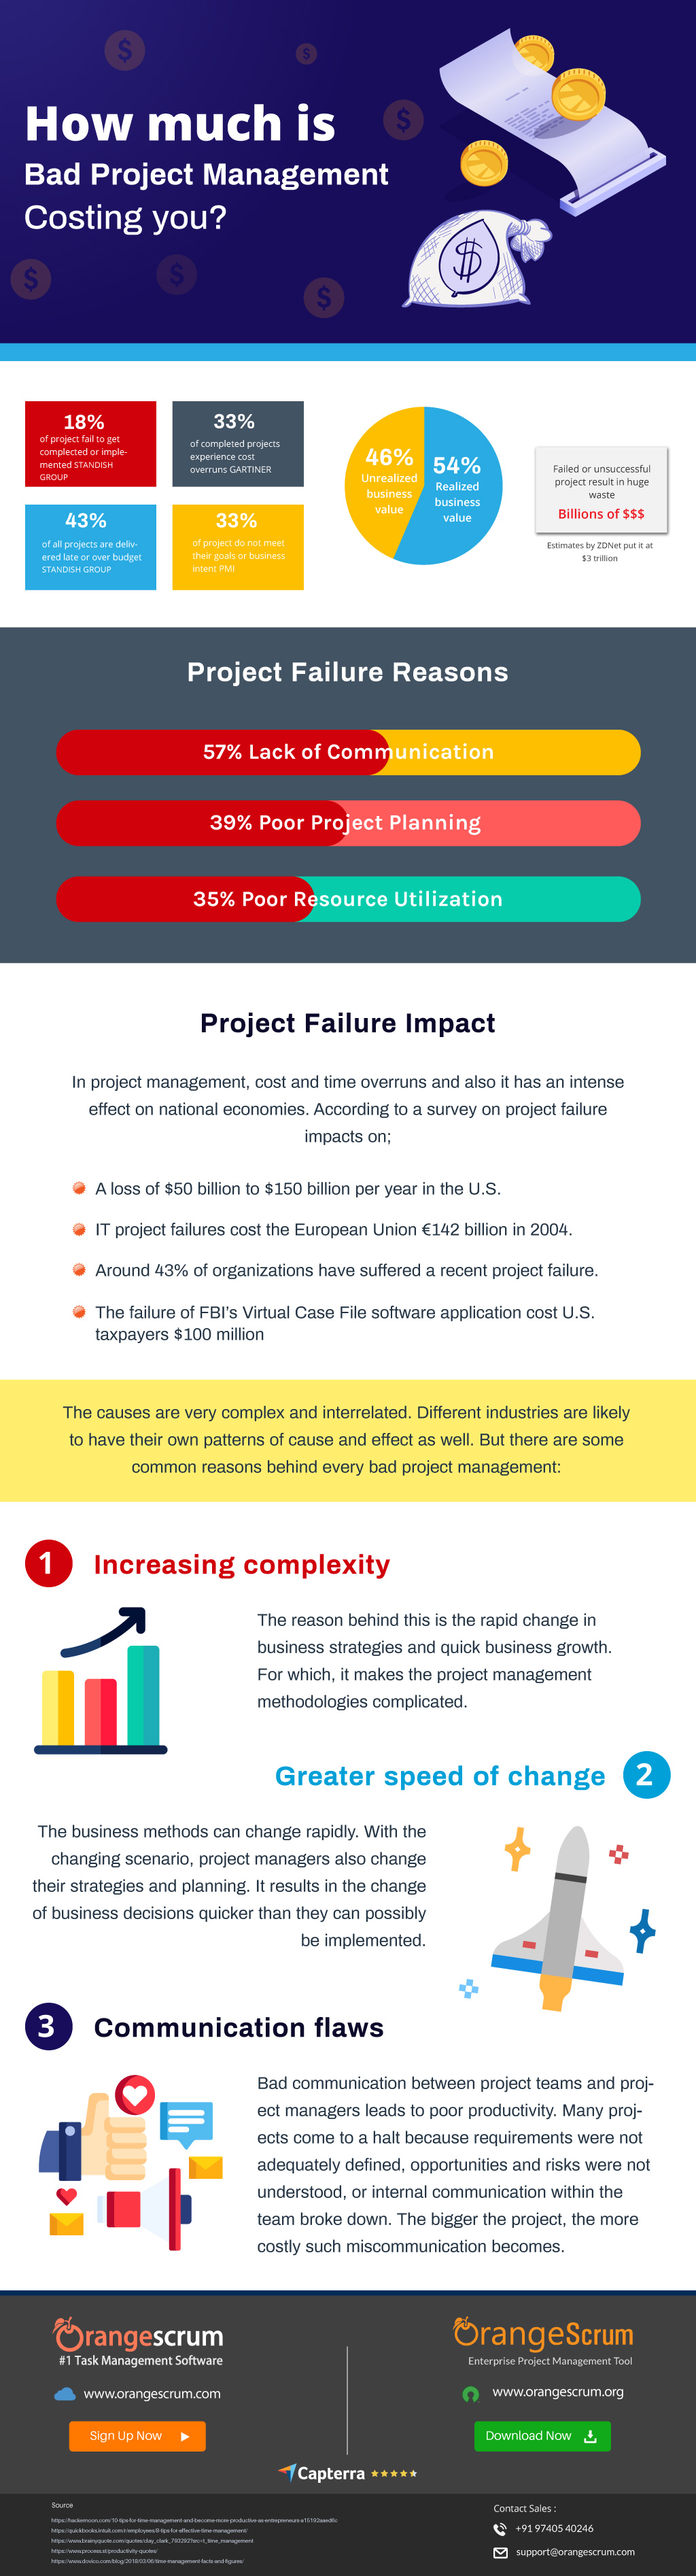 How Much Is Bad Project Management Costing You